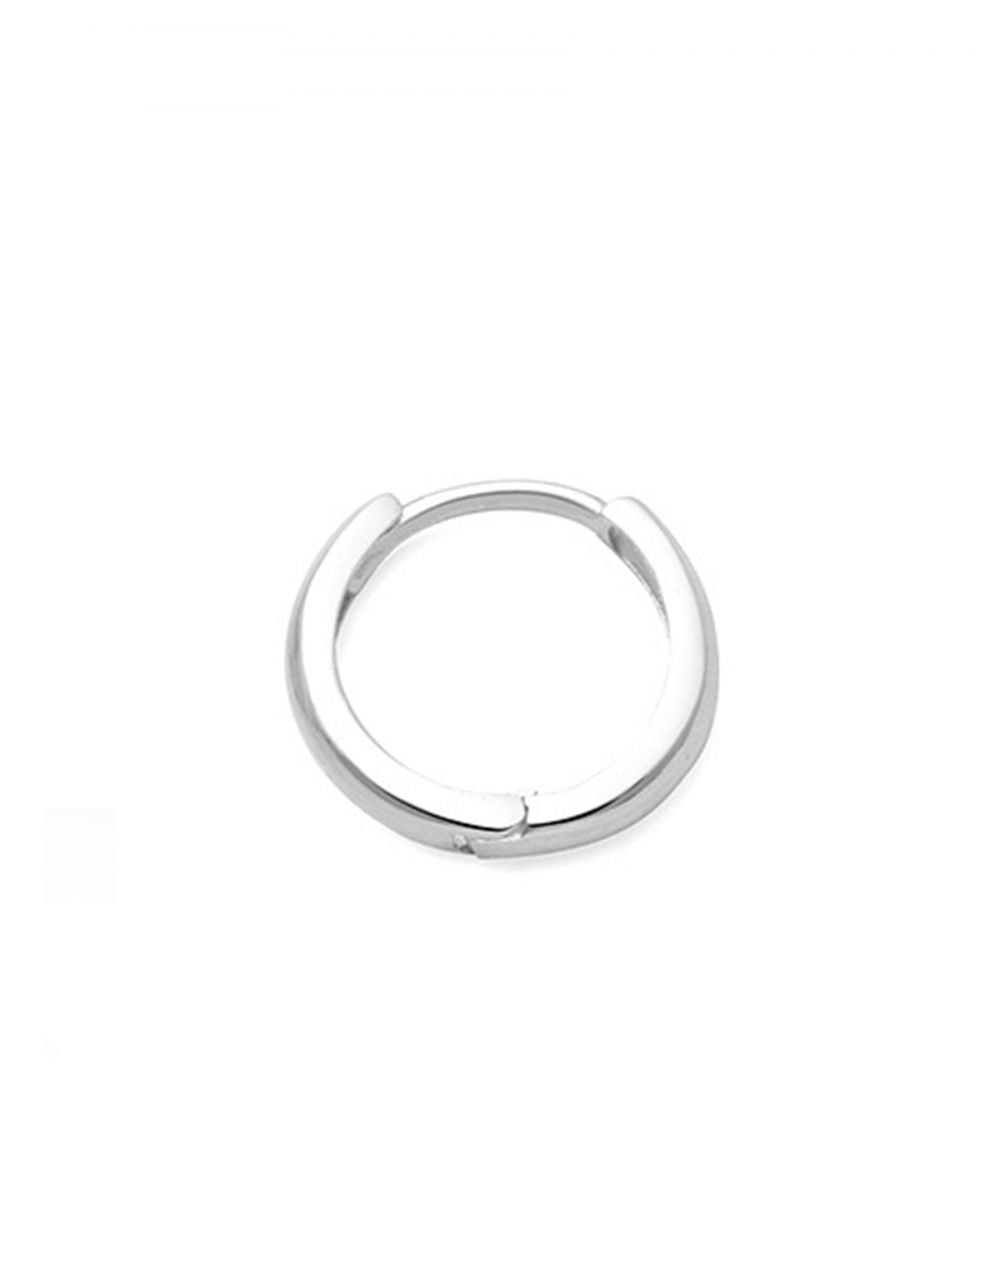 Mini Gold Hoop Piercing<br /><i><small>14K White Gold</small></i><br /> - Eddera